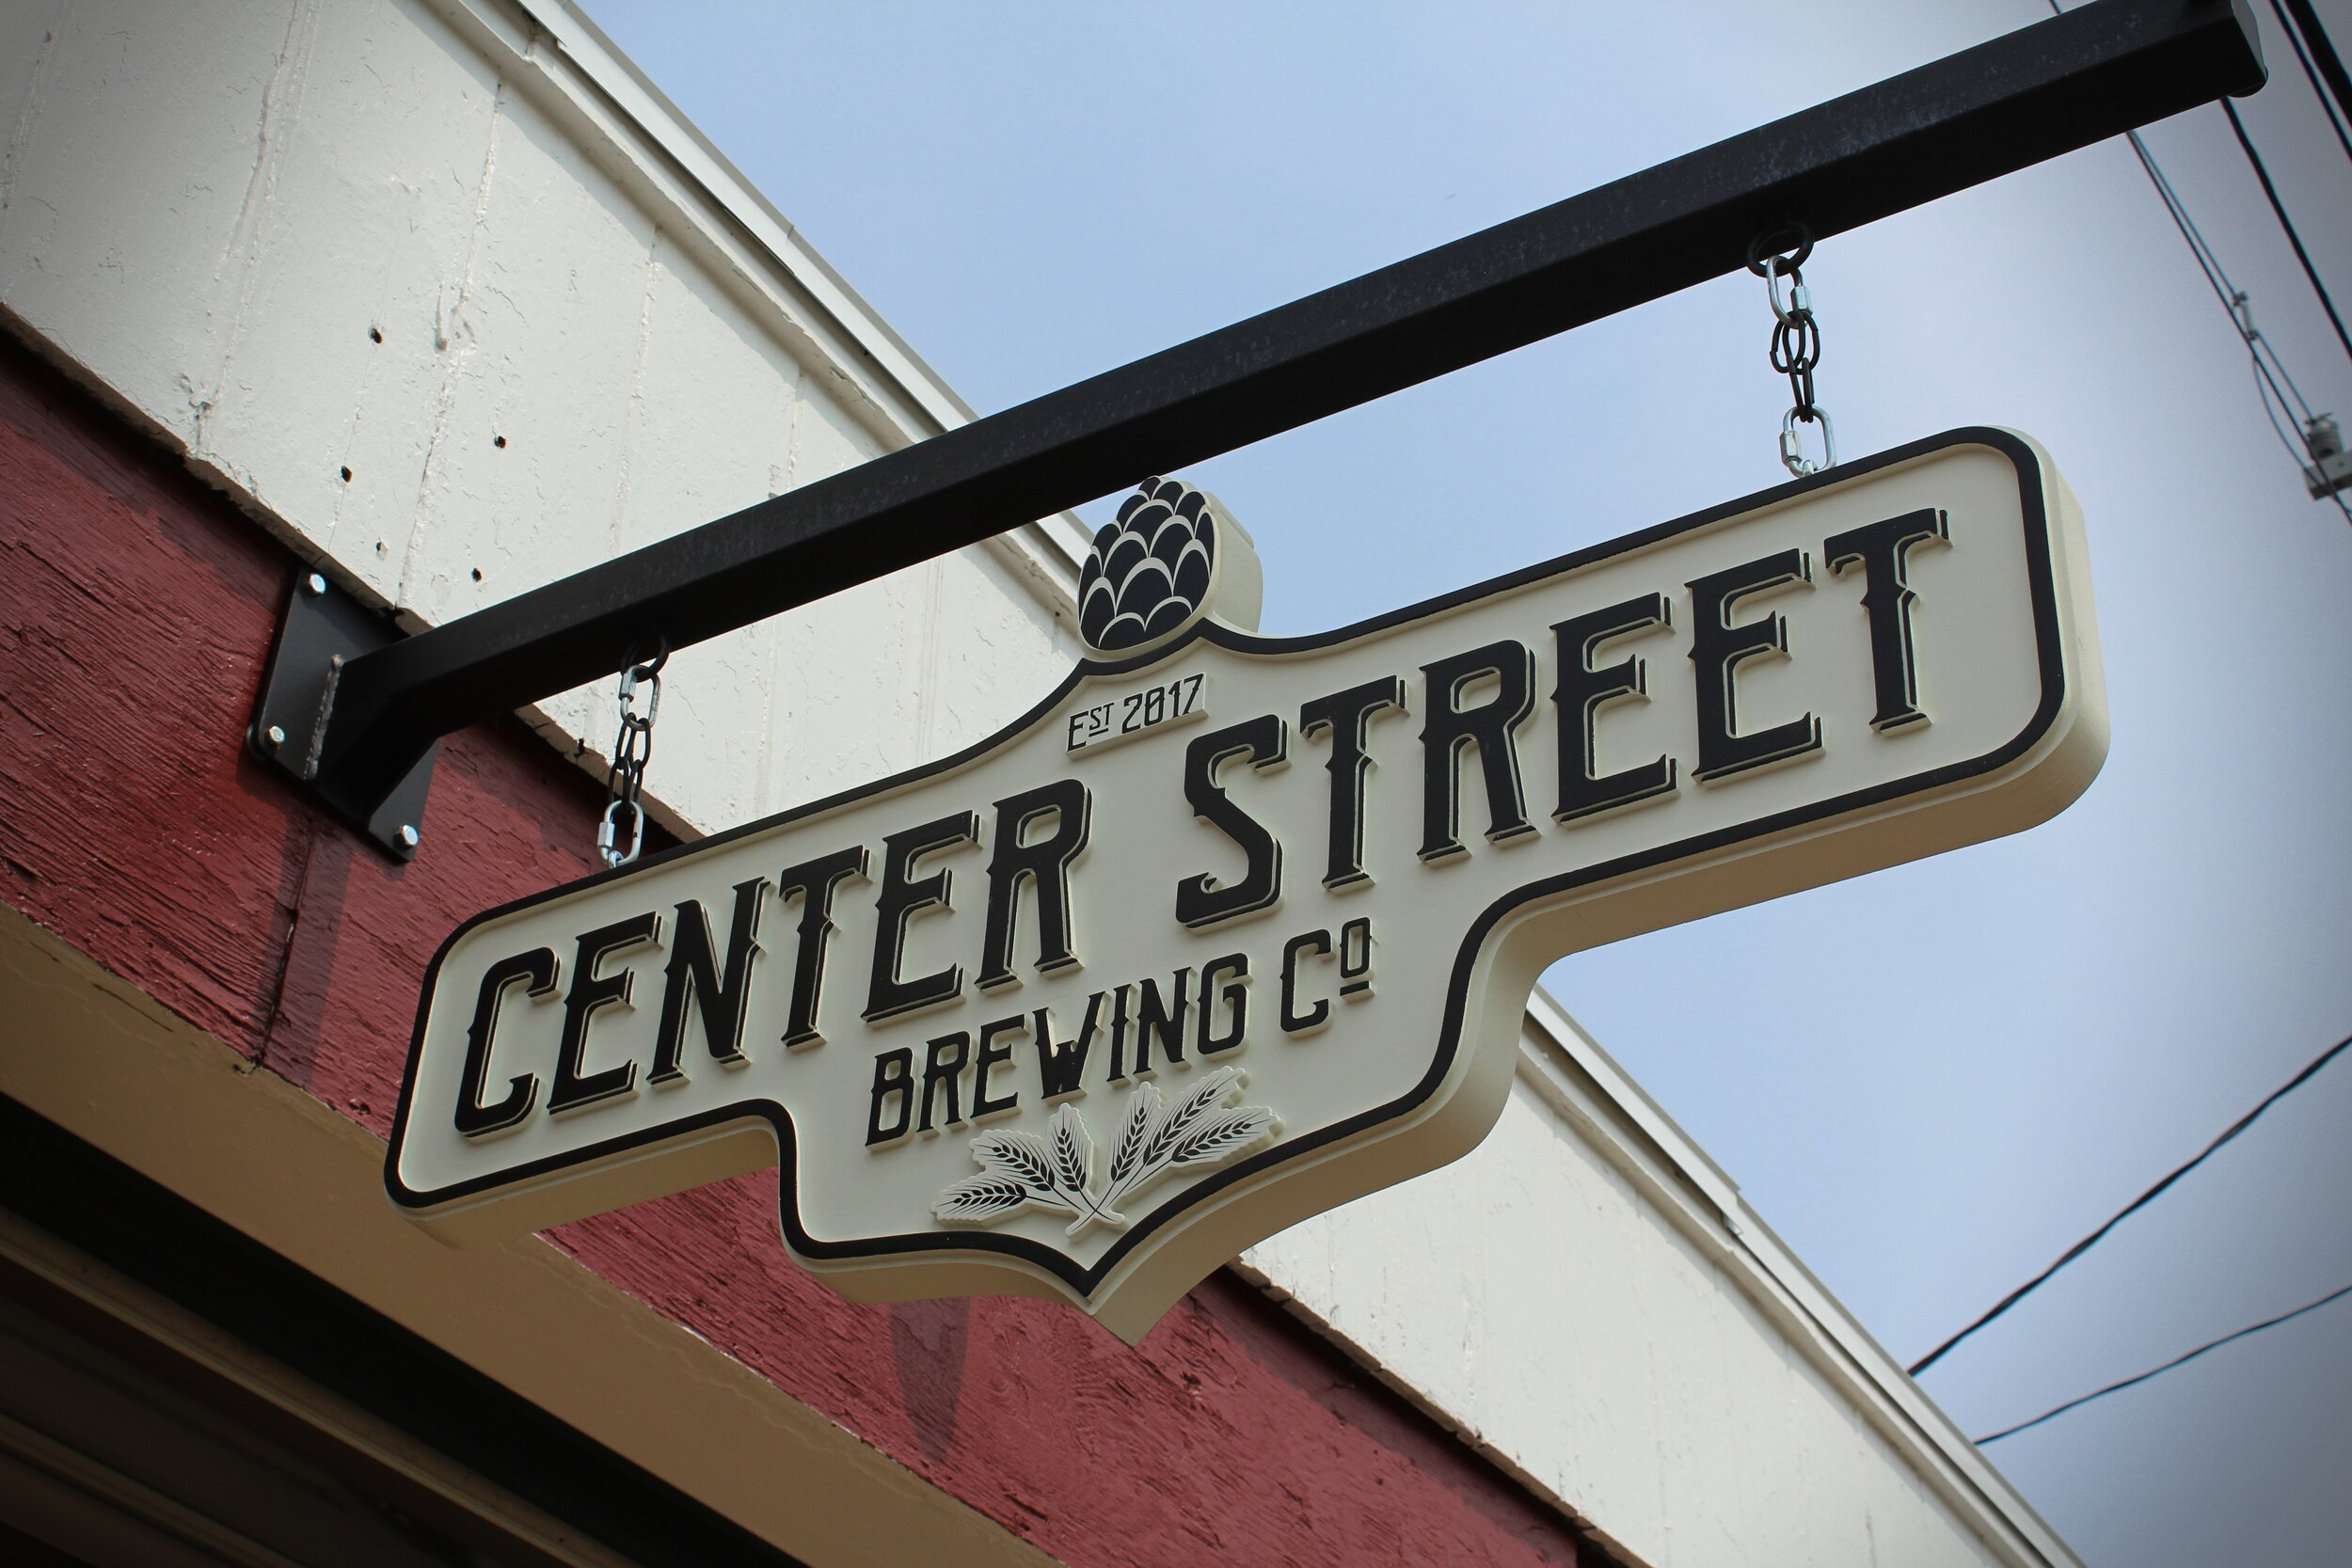 Center Street Brewing Company